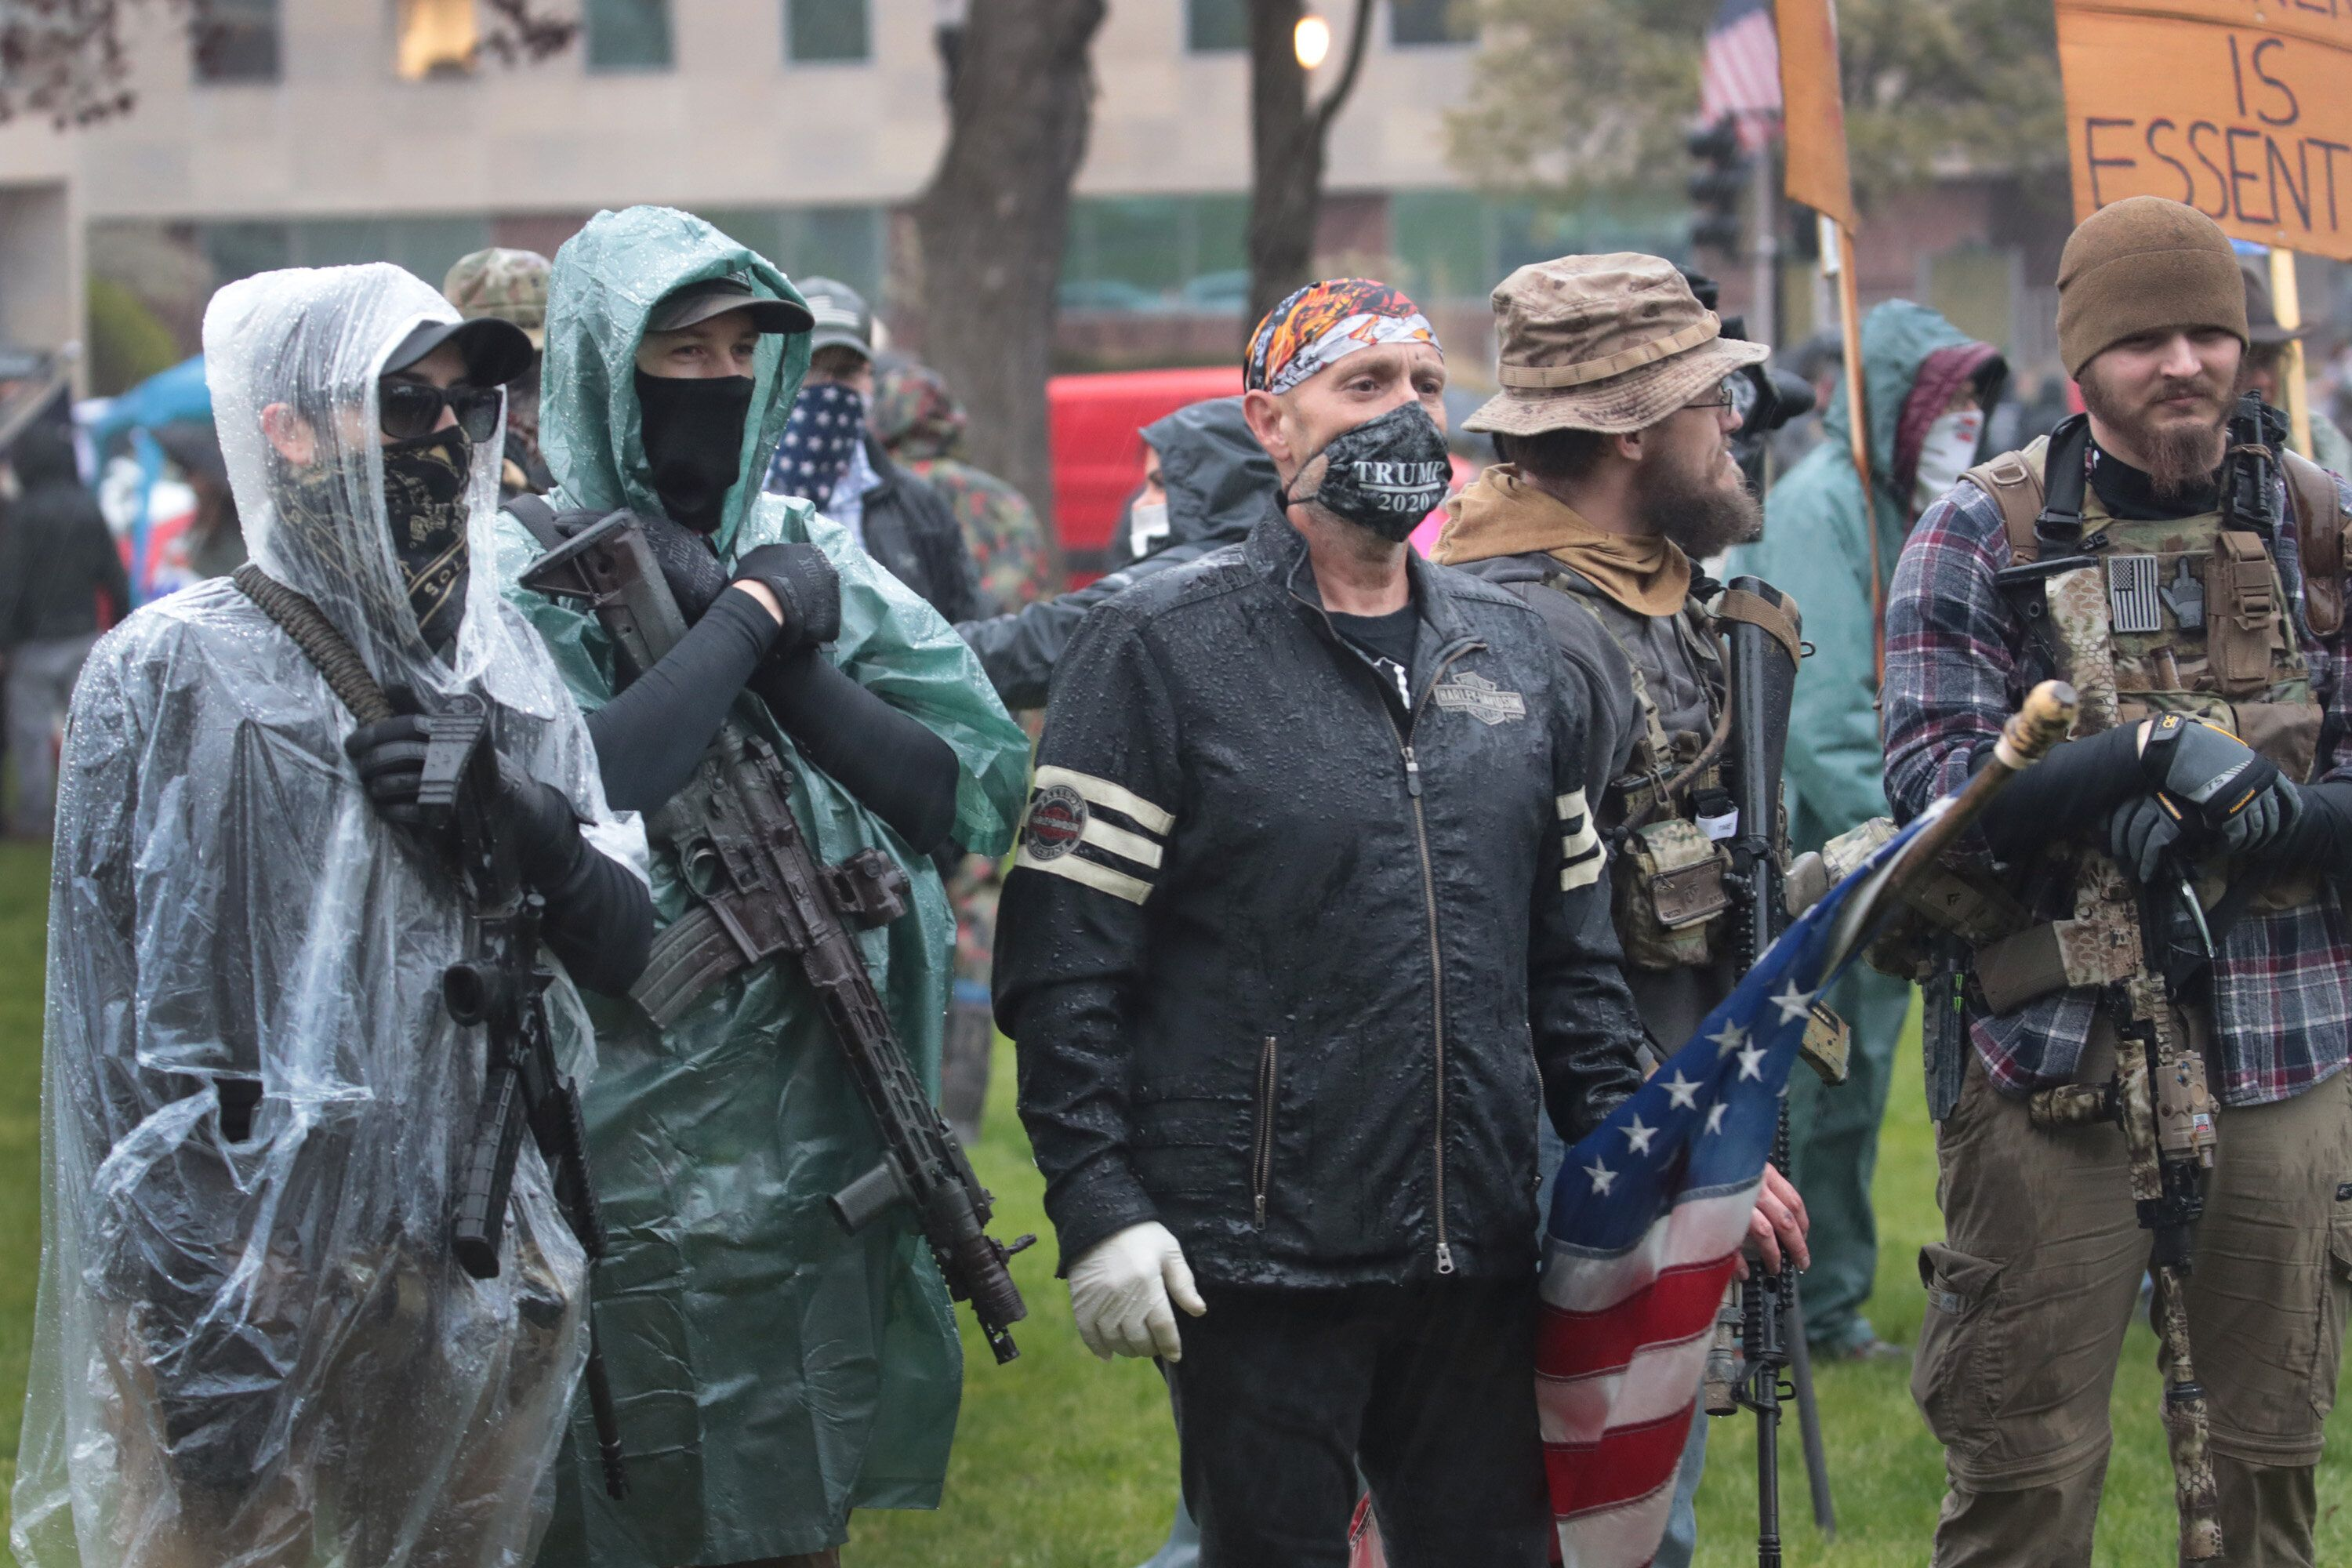 Gun-toting protesters rallied outside the Michigan state capitol this spring to demonstrate against Gov. Gretchen Whitmer's C